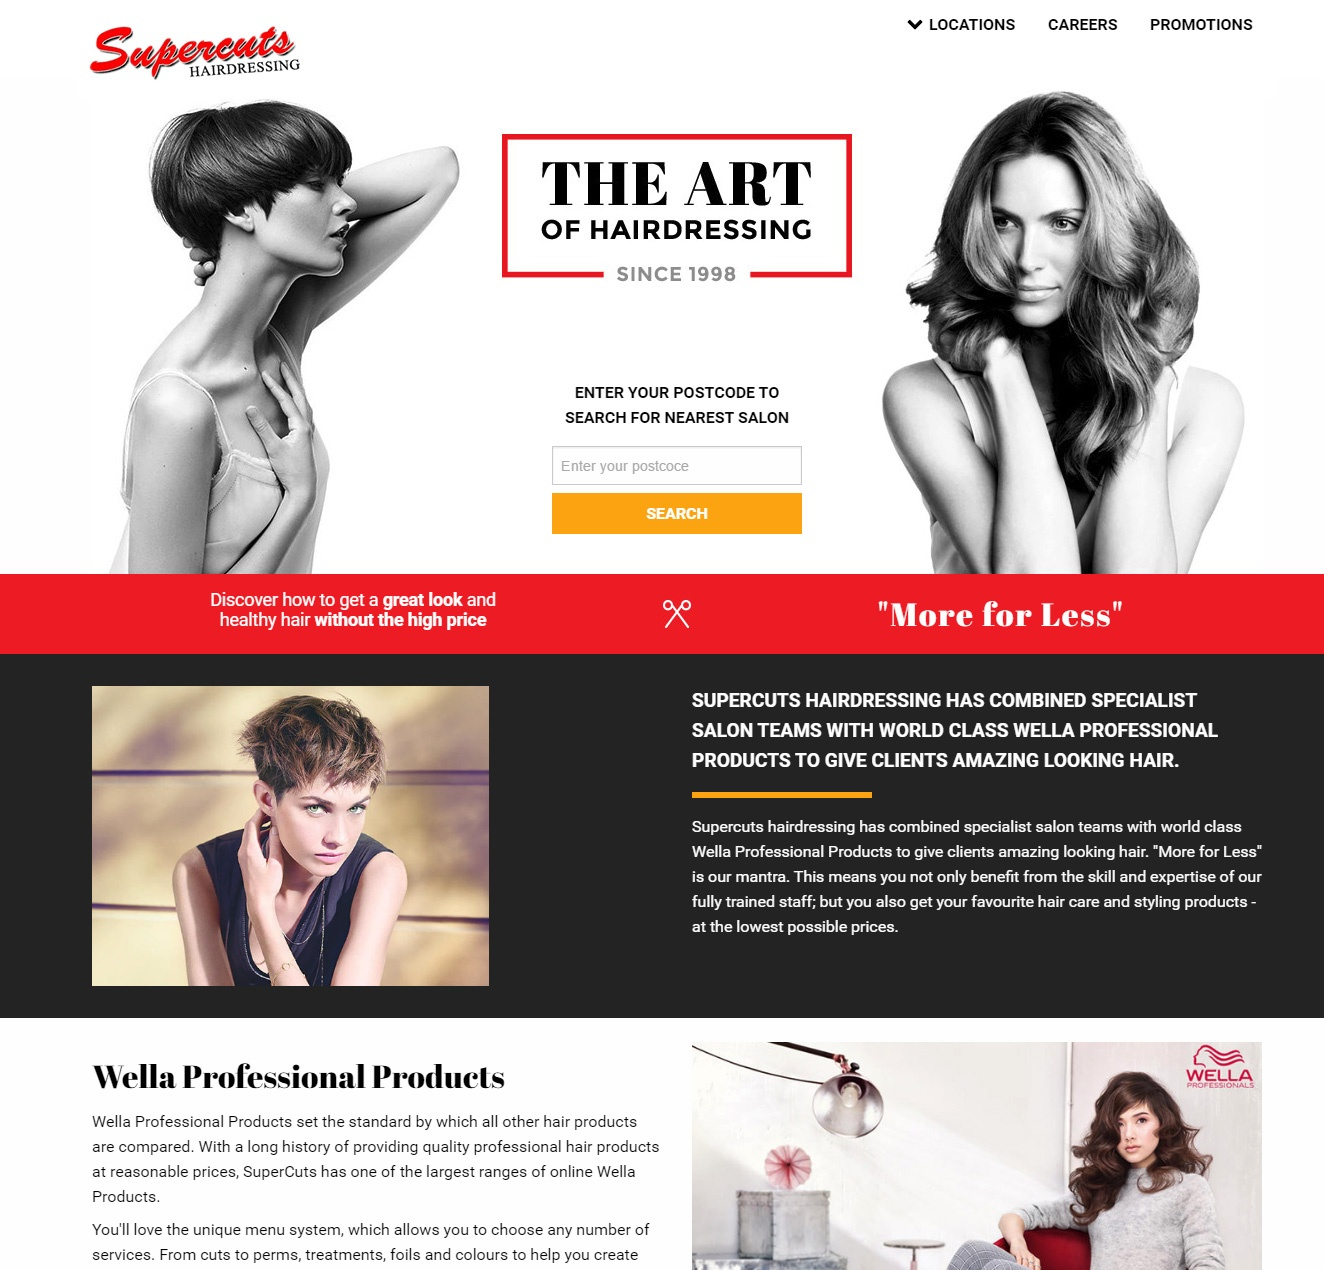 Blog Image From JUST LAUNCHED! supercuts.com.au